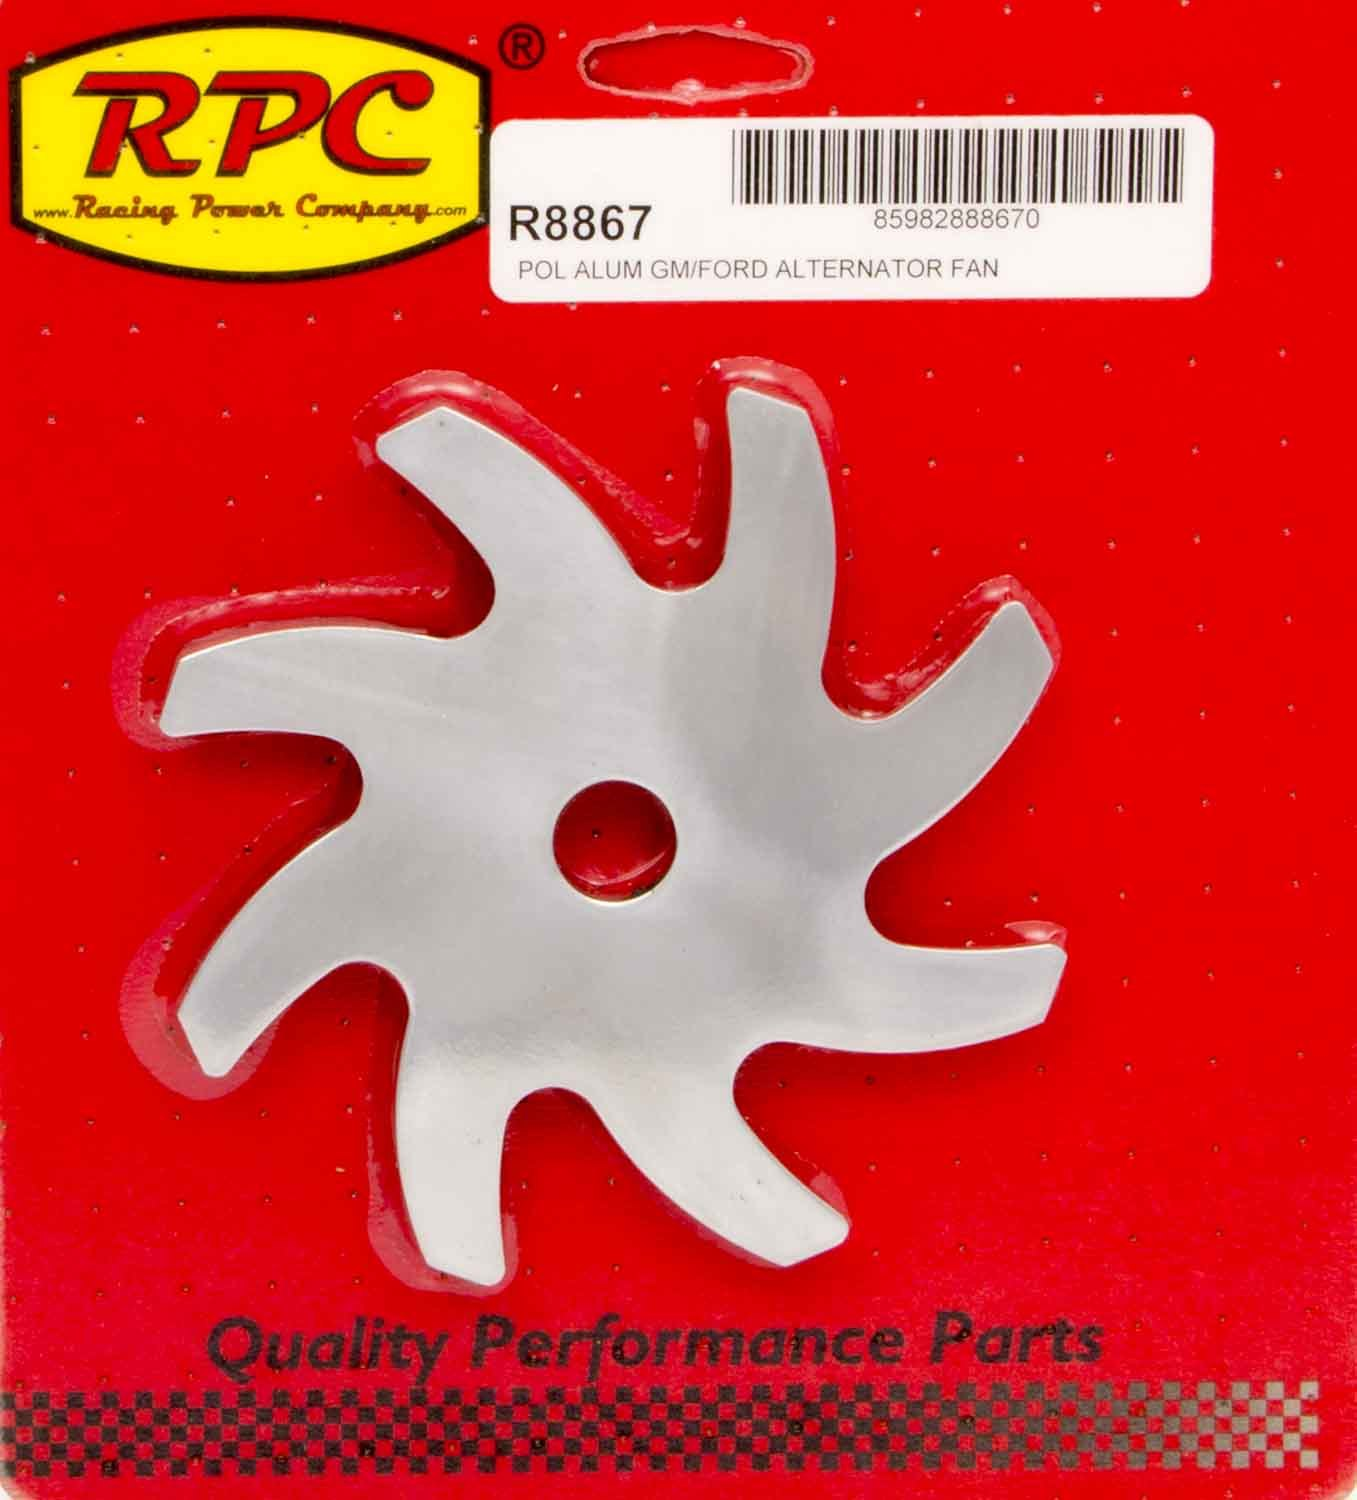 Racing Power Co-packaged Alternator Pulley Fan Polished Aluminum